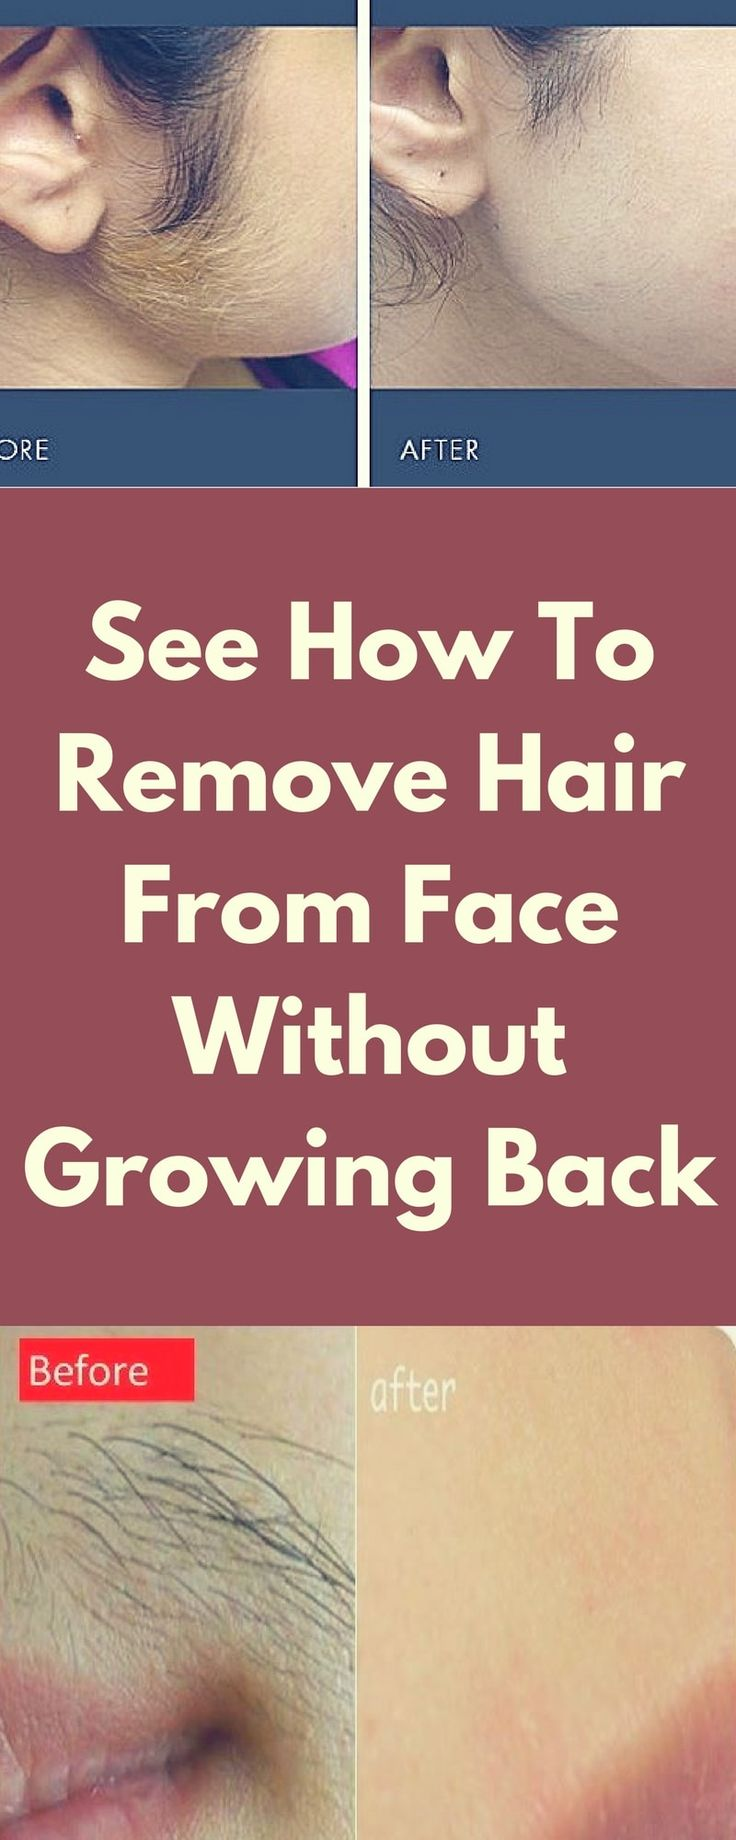 #hair #face #beauty #solution #remedy #home